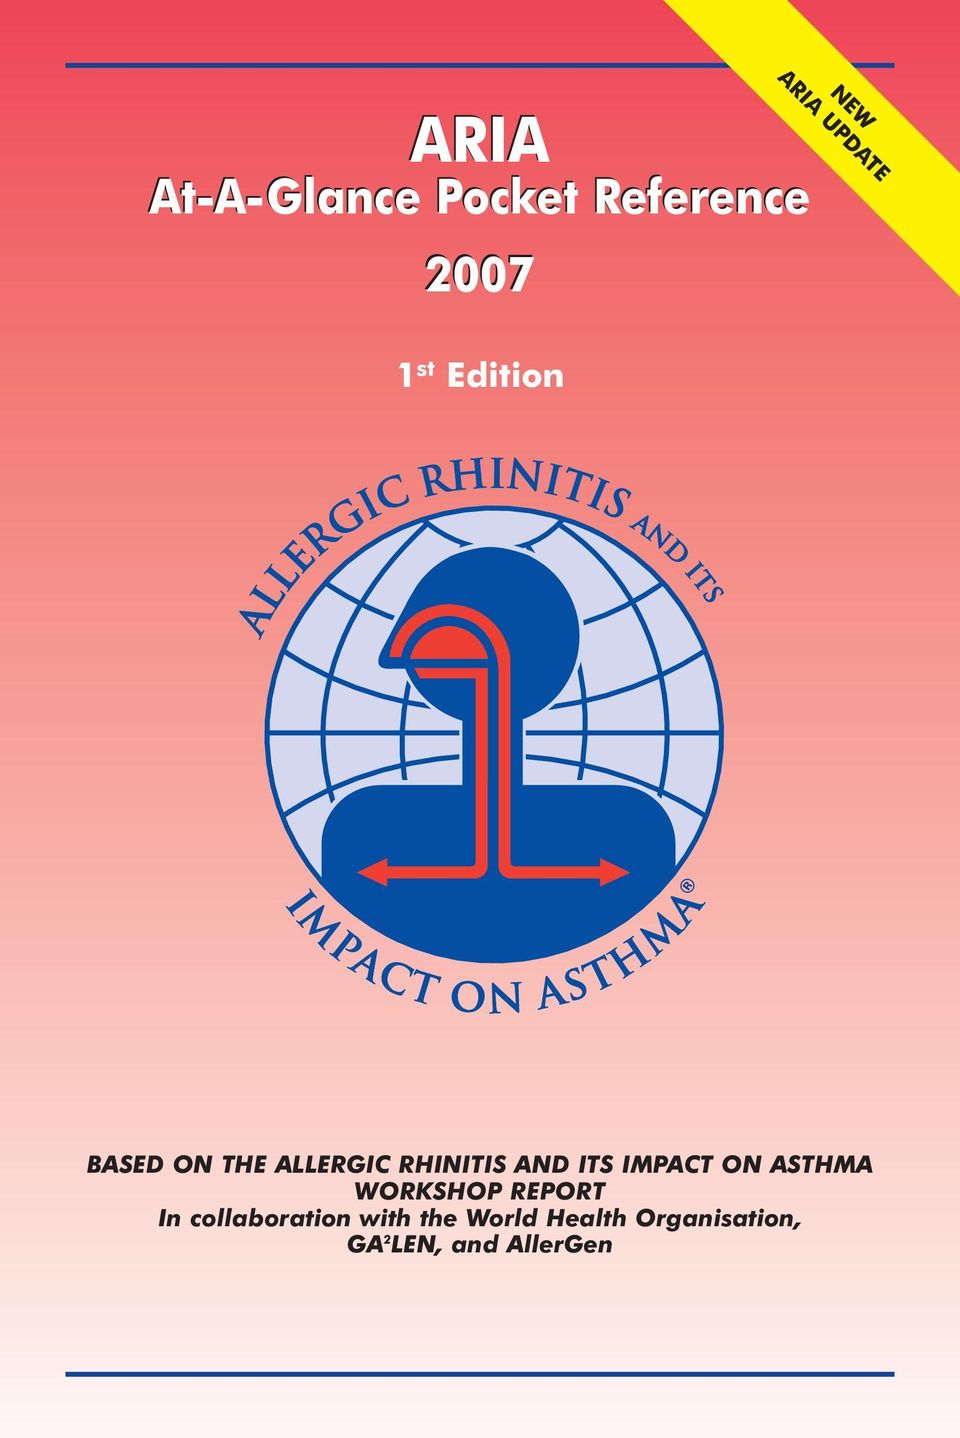 ITS IMPACT ON ASTHMA WORKSHOP REPORT In collaboration